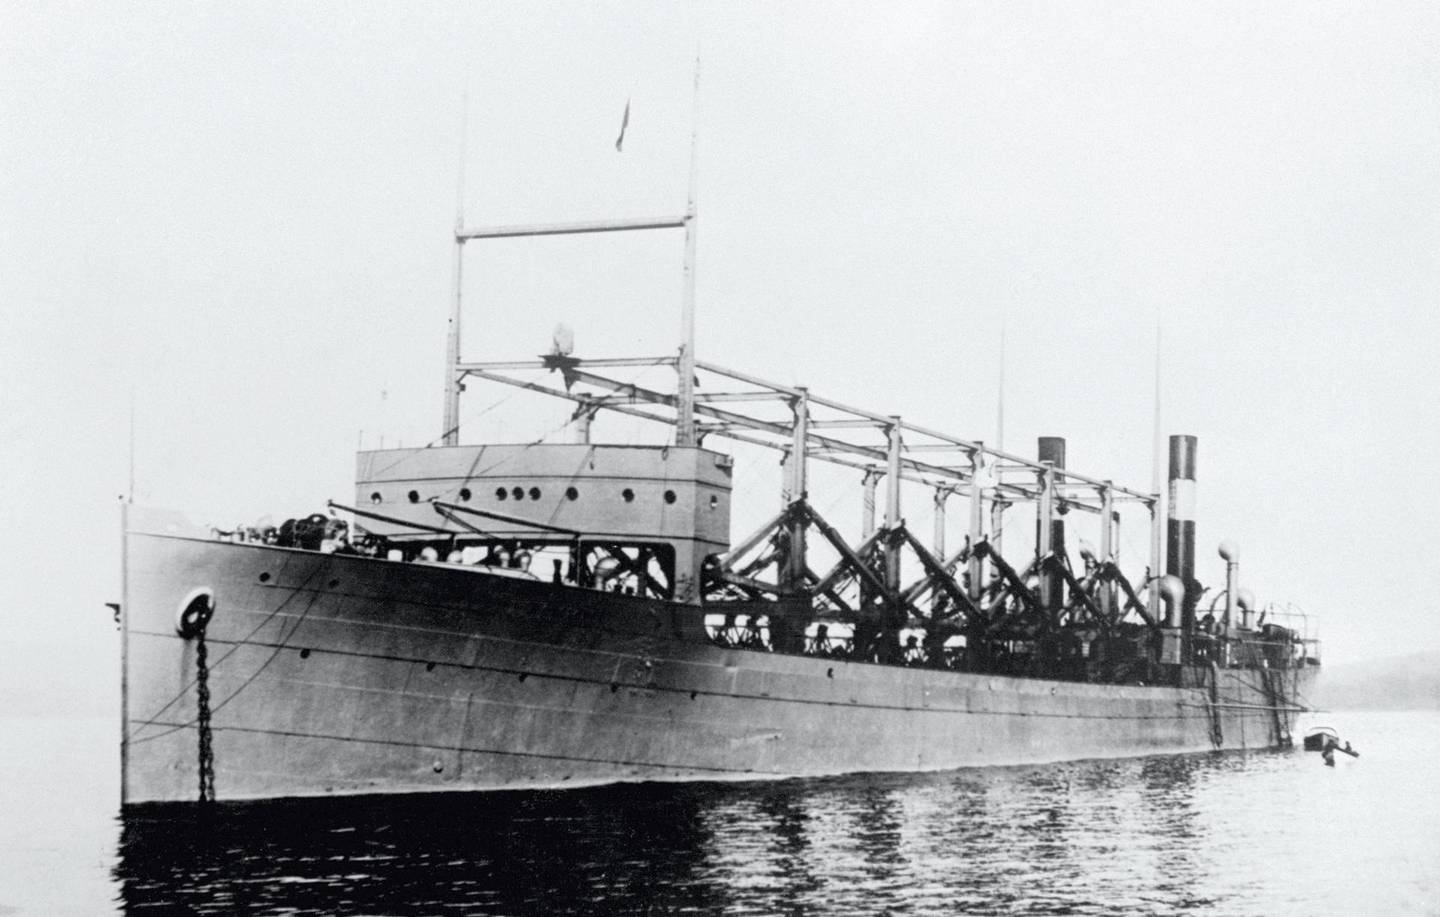 (Original Caption) 9/8/1939-New York- The United States Navy collier Cyclops, which disappeared during the war year of 1918. The ship disappeared as it brought a cargo of manganese from Brazil. To this day, no trace of the Cyclops has been found.